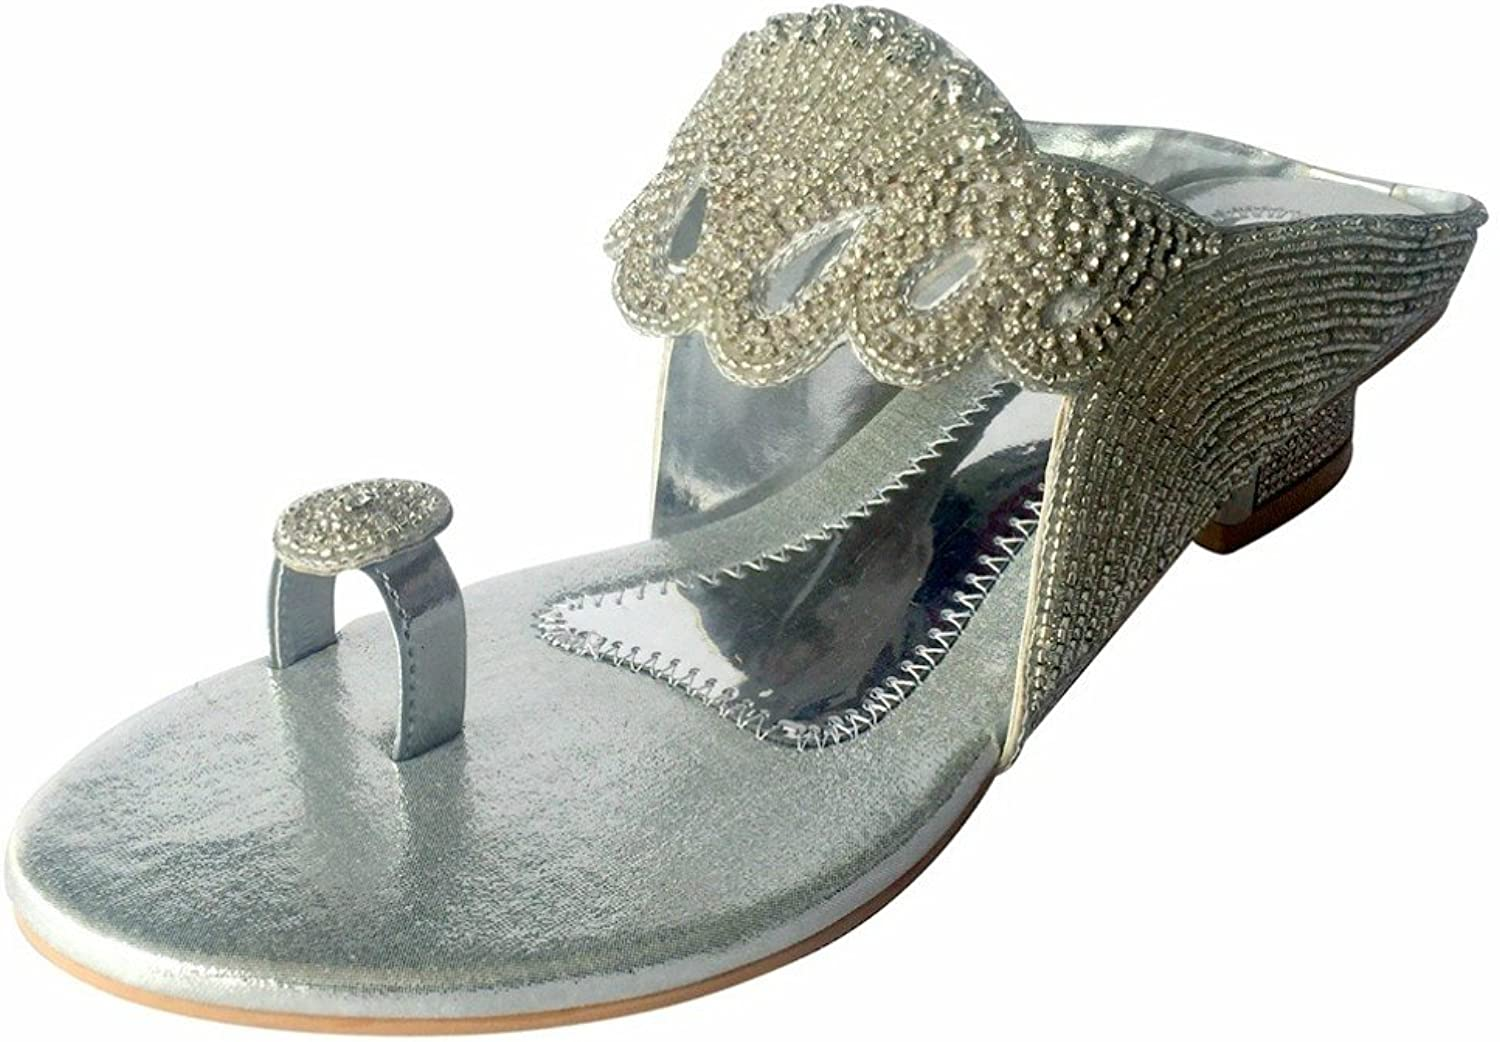 Step n Style Womens Diamante Indian Wedding Party Sandals shoes Juttis Khussa shoes